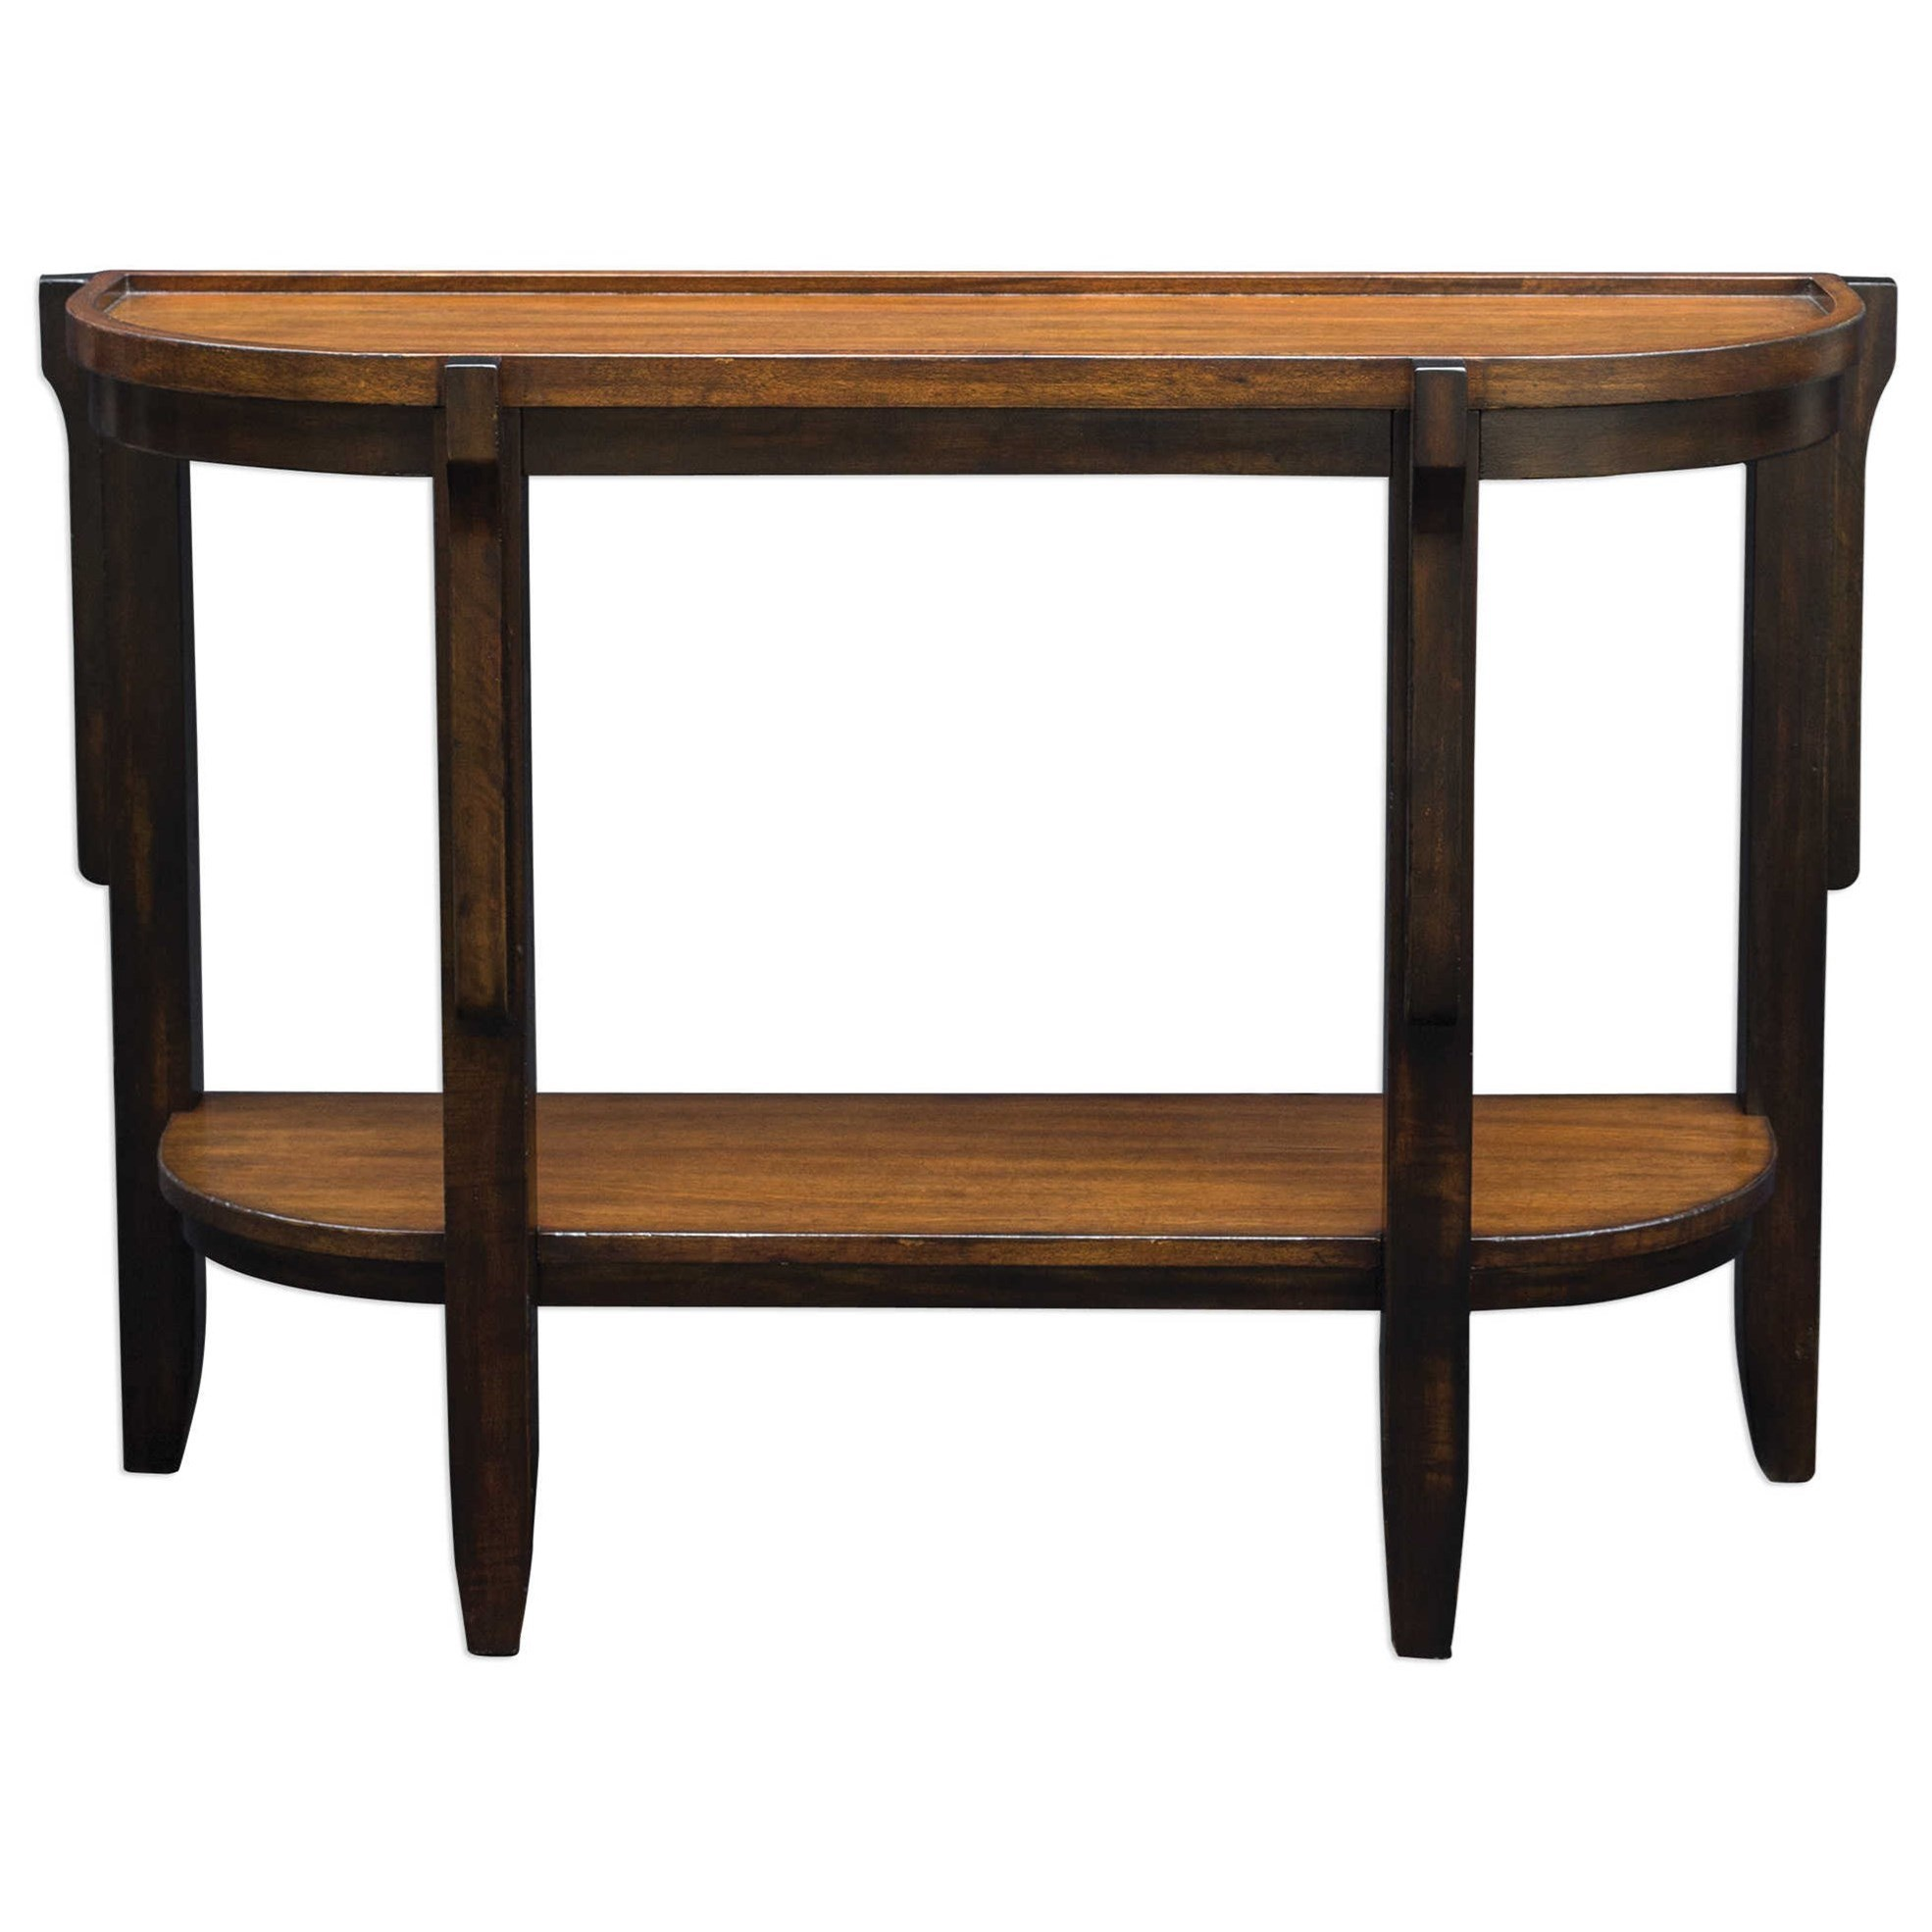 Accent Furniture - Occasional Tables Sigmon Wooden Console Table by Uttermost at Factory Direct Furniture